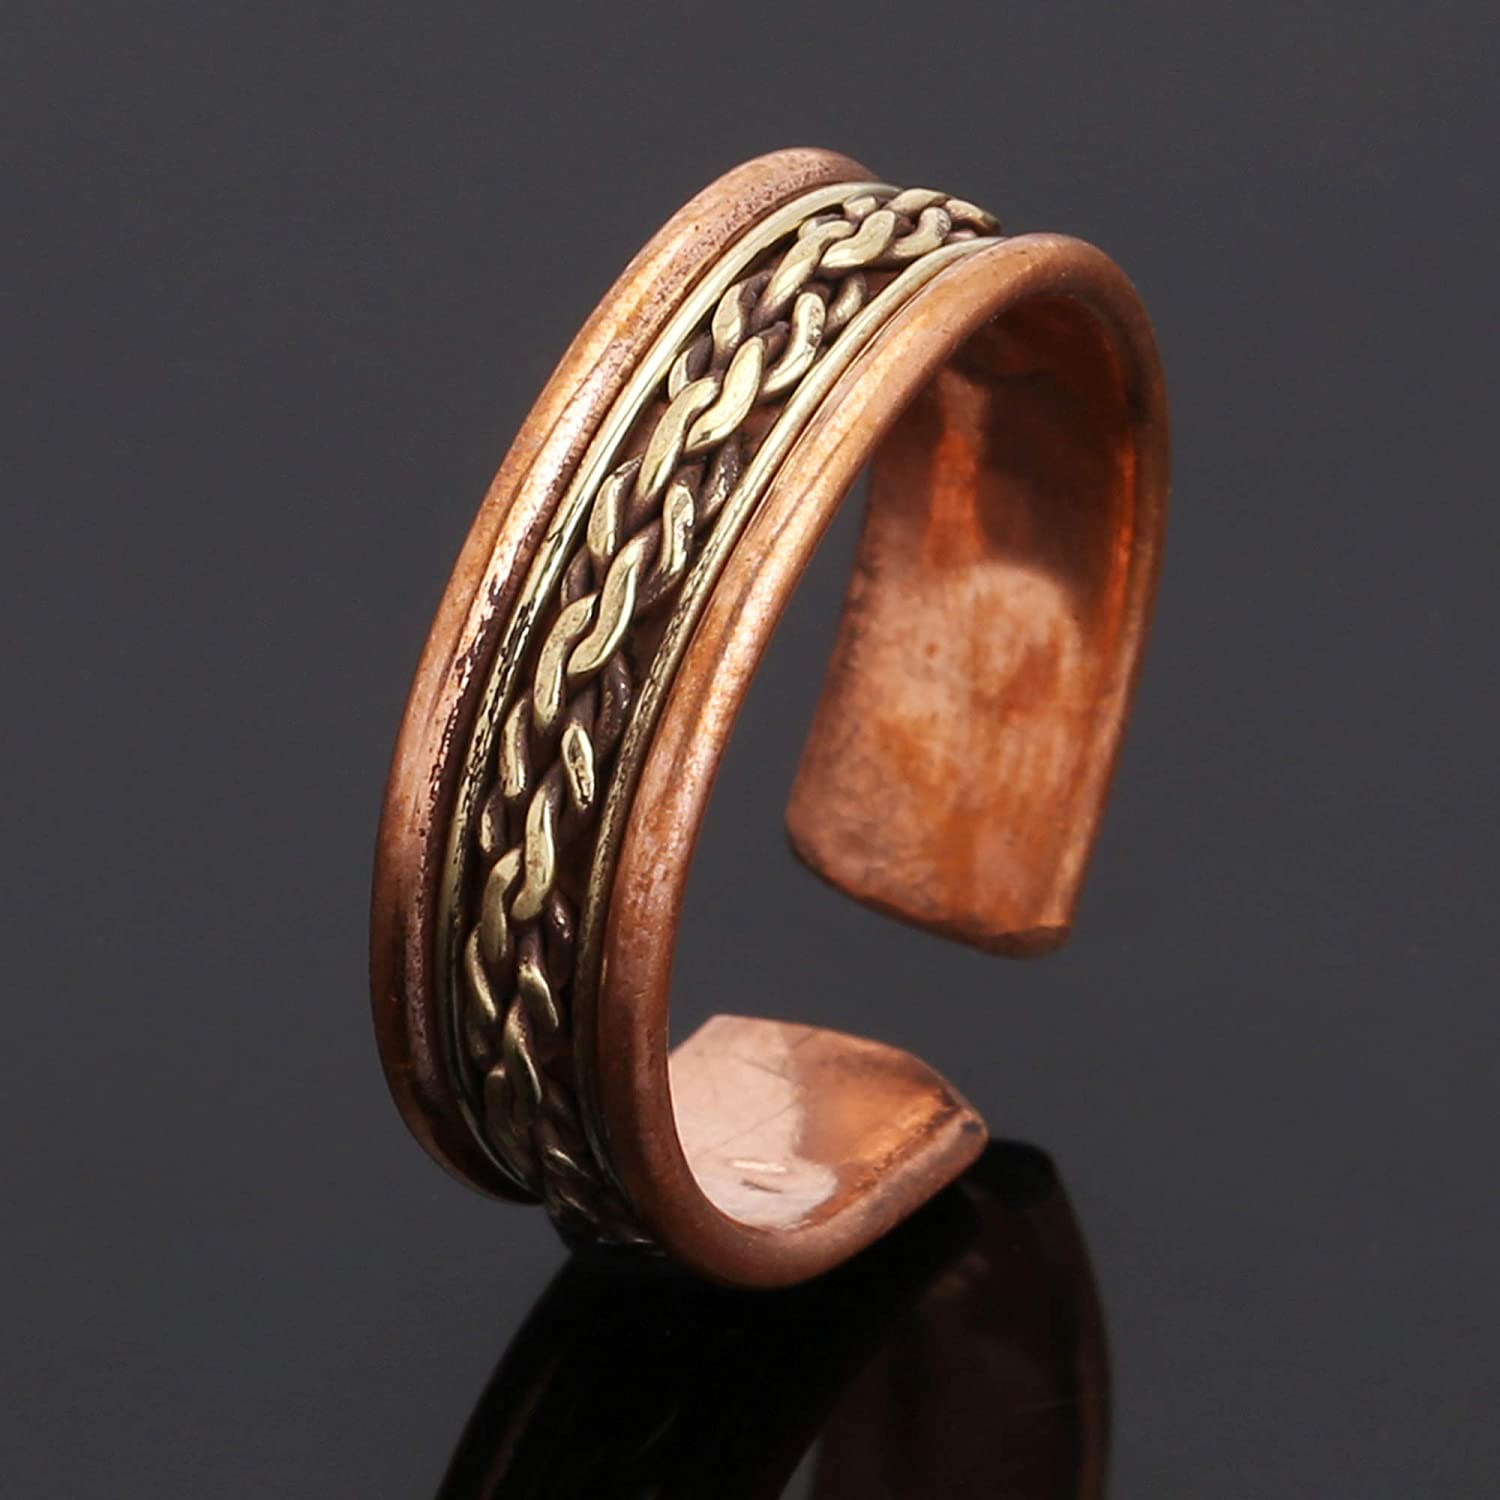 iCraftJewel Pure Copper Thumb Ring Bio Healing Pain Reliever Adjustable Brown Ring Gift Item